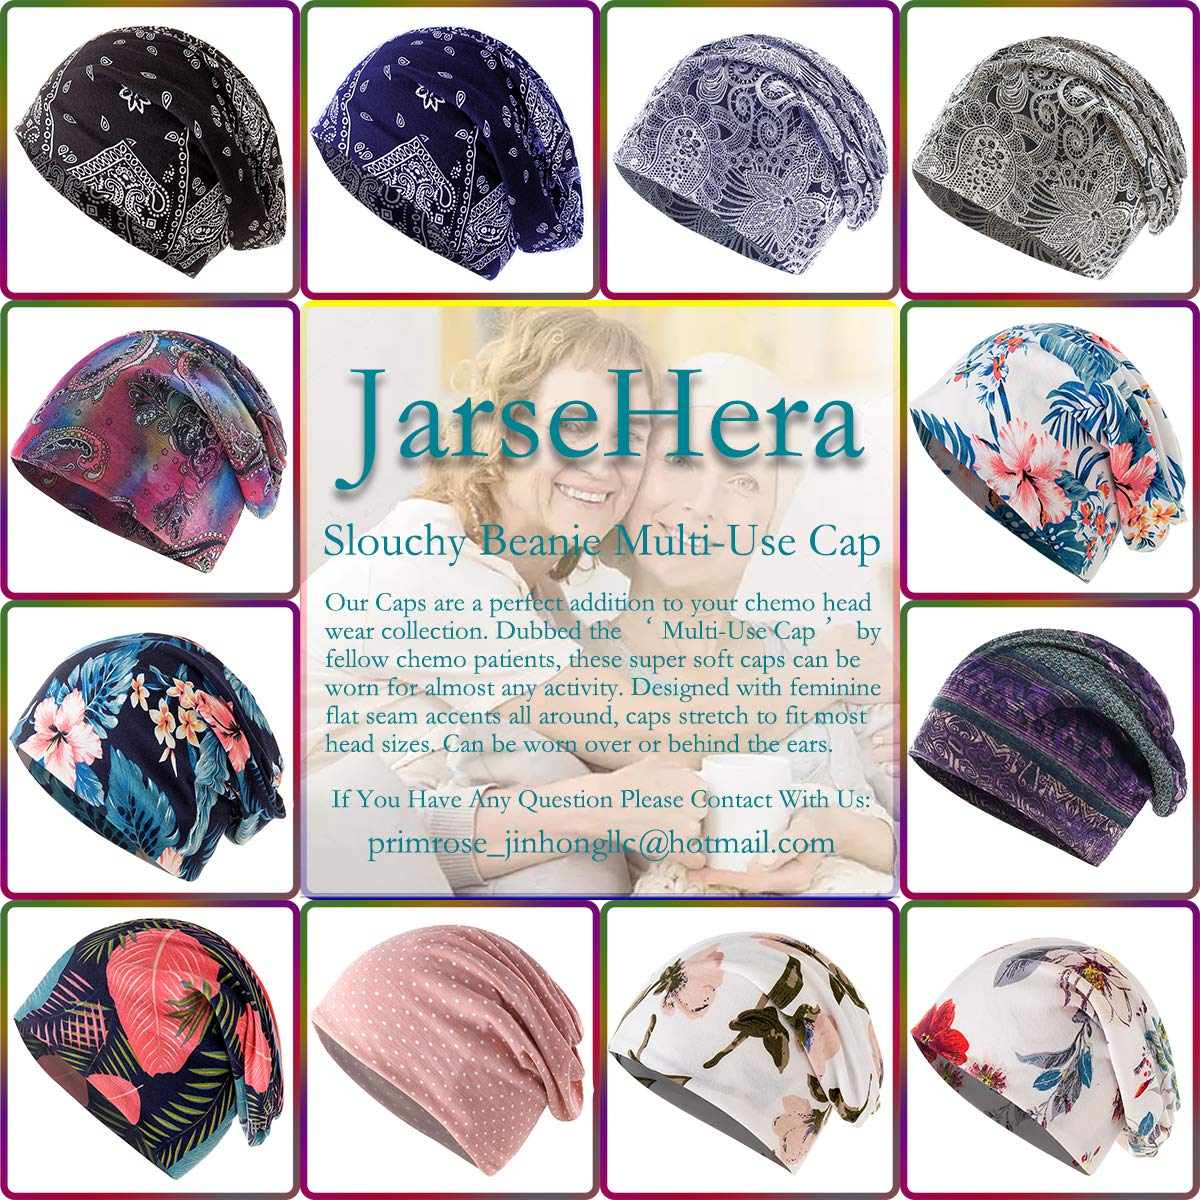 JarseHera Chemo Caps for Women Slouchy Beanie Casual Headcovers Both Open for